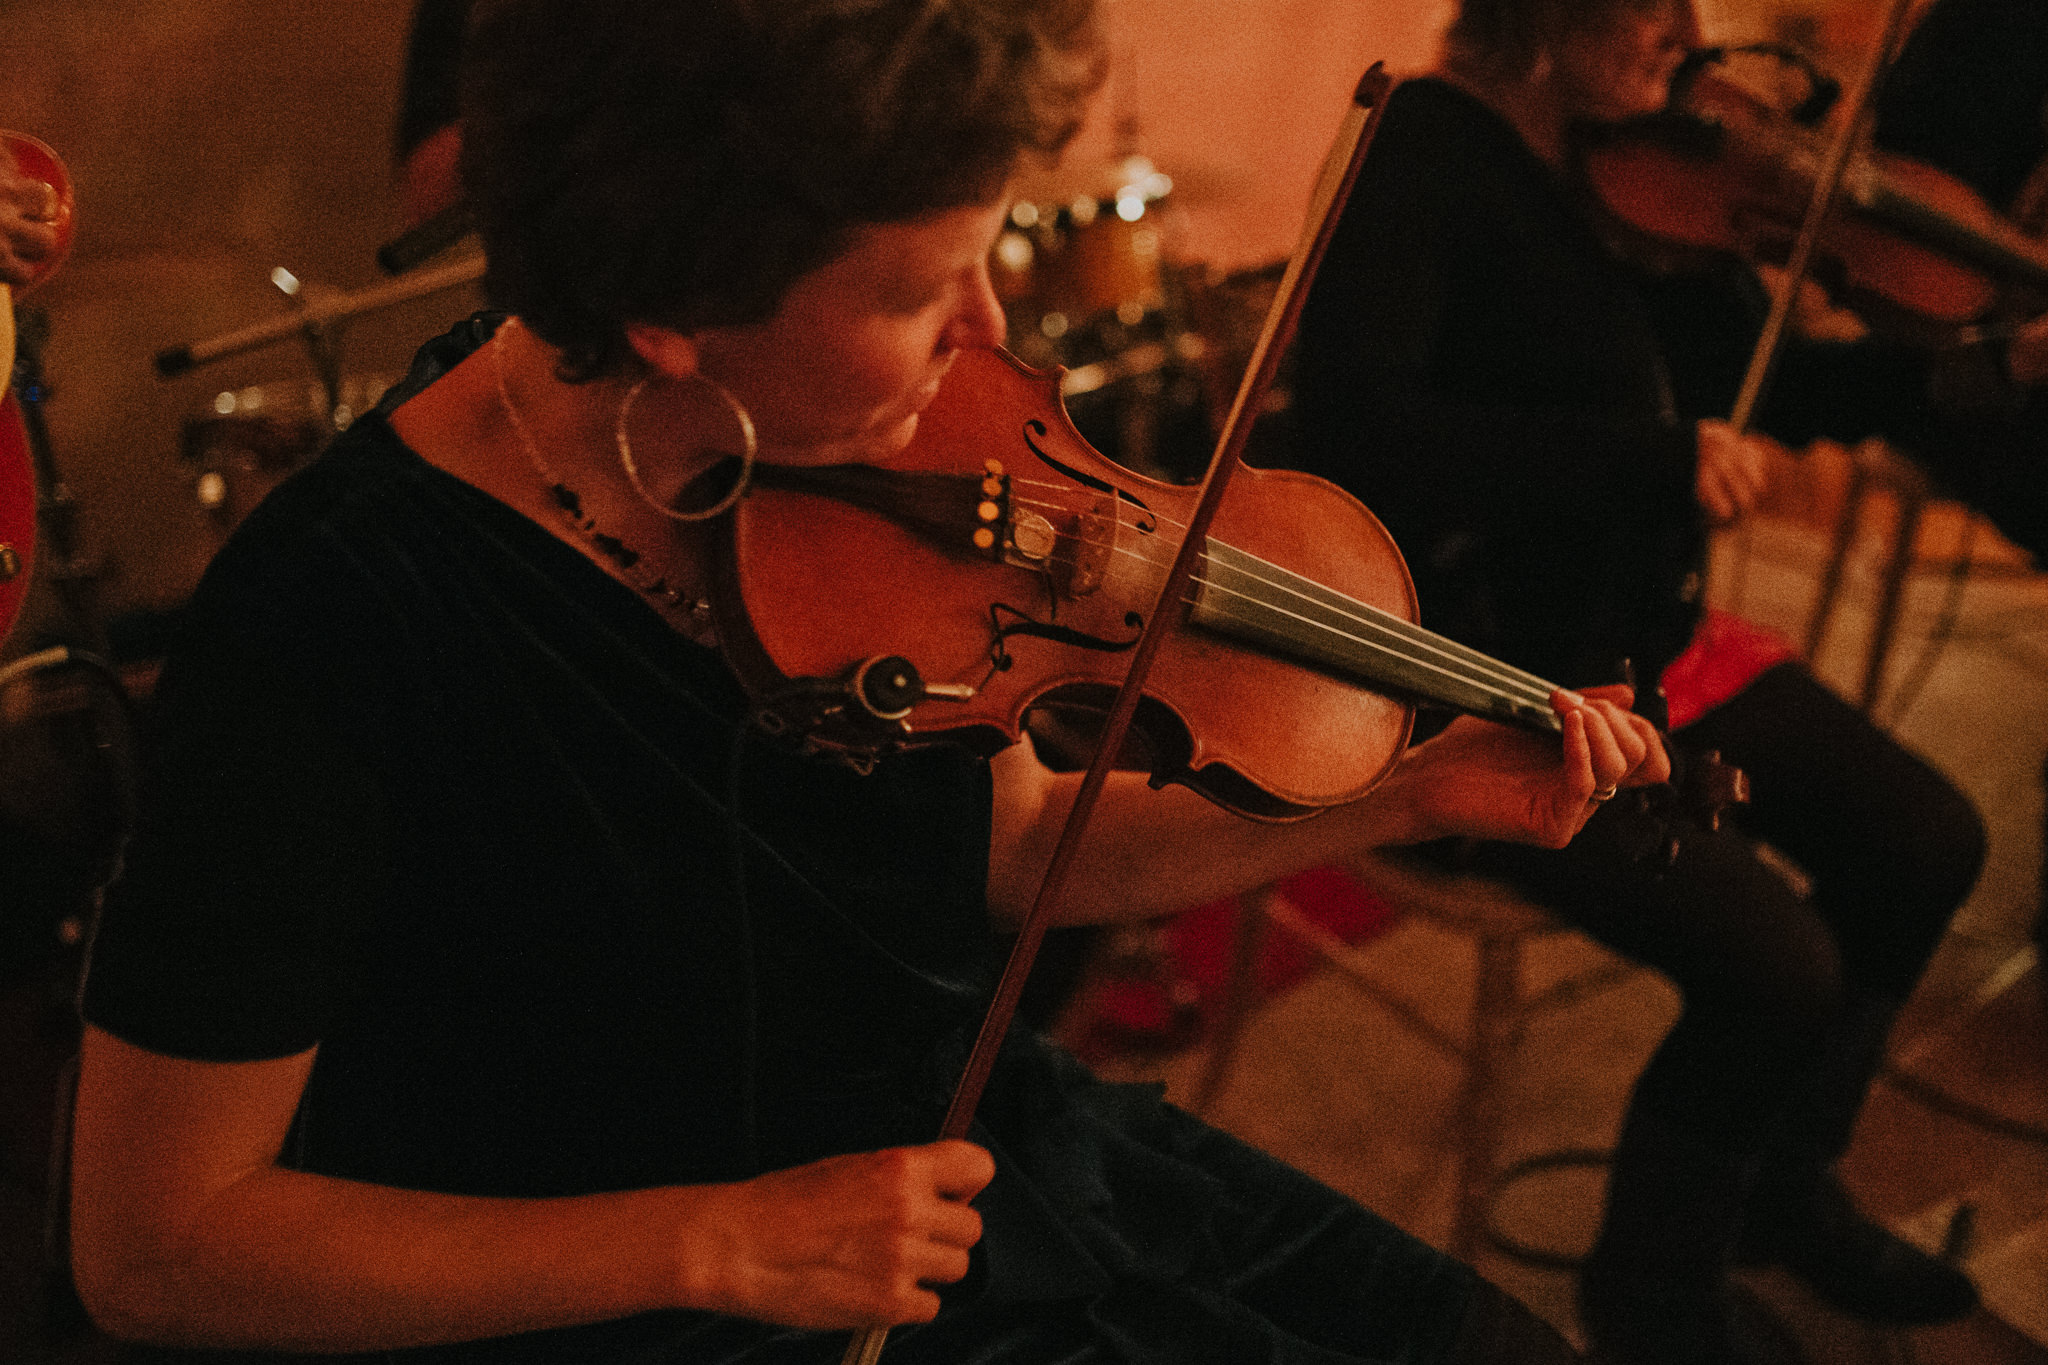 A musician is playing her violin.